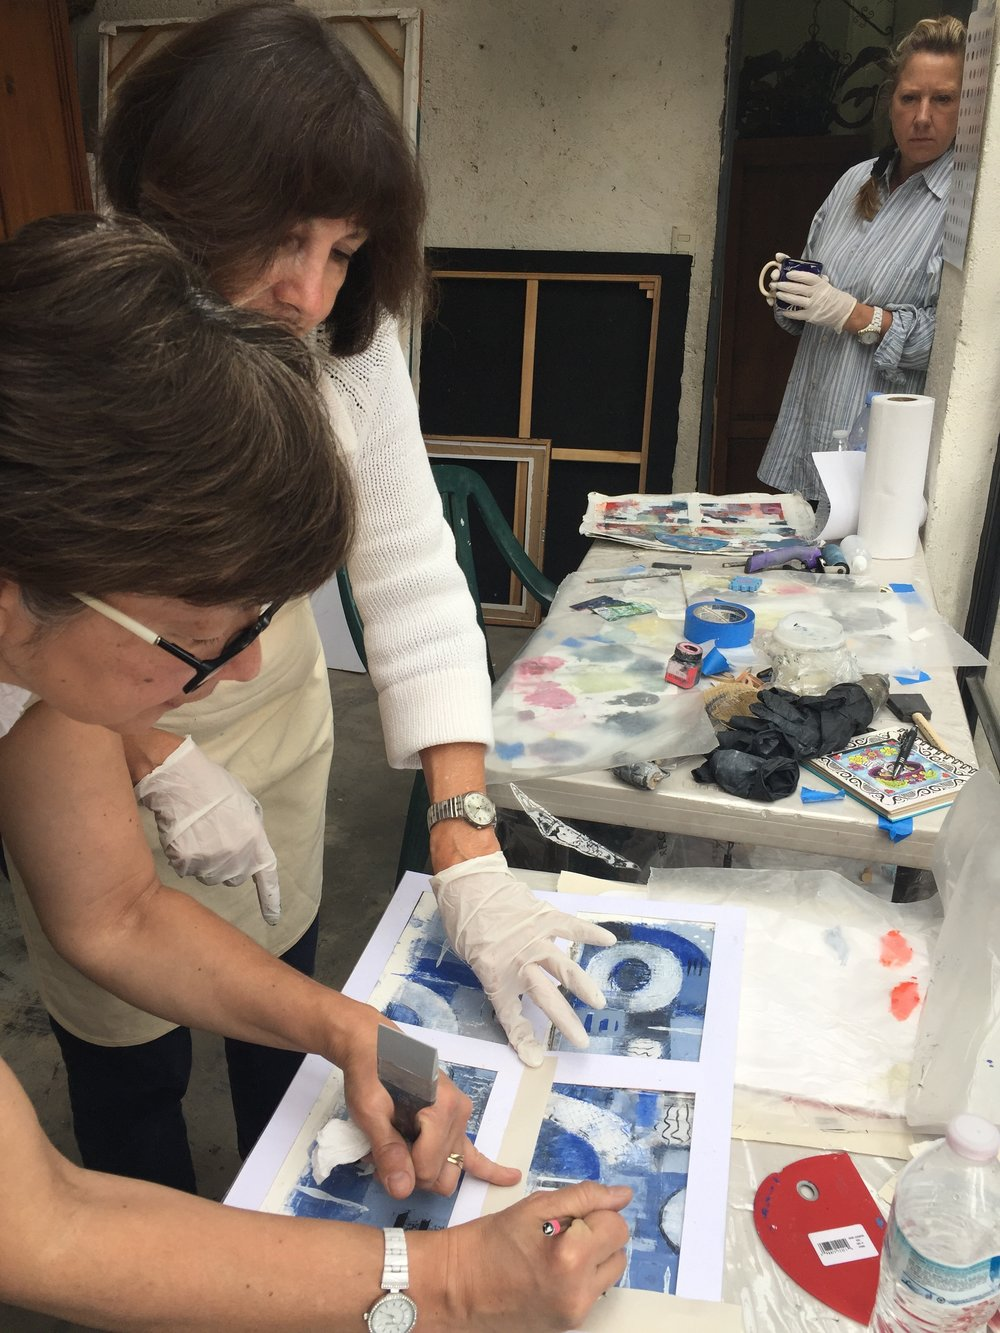 Pam shows Pilar how to use masking on her painting